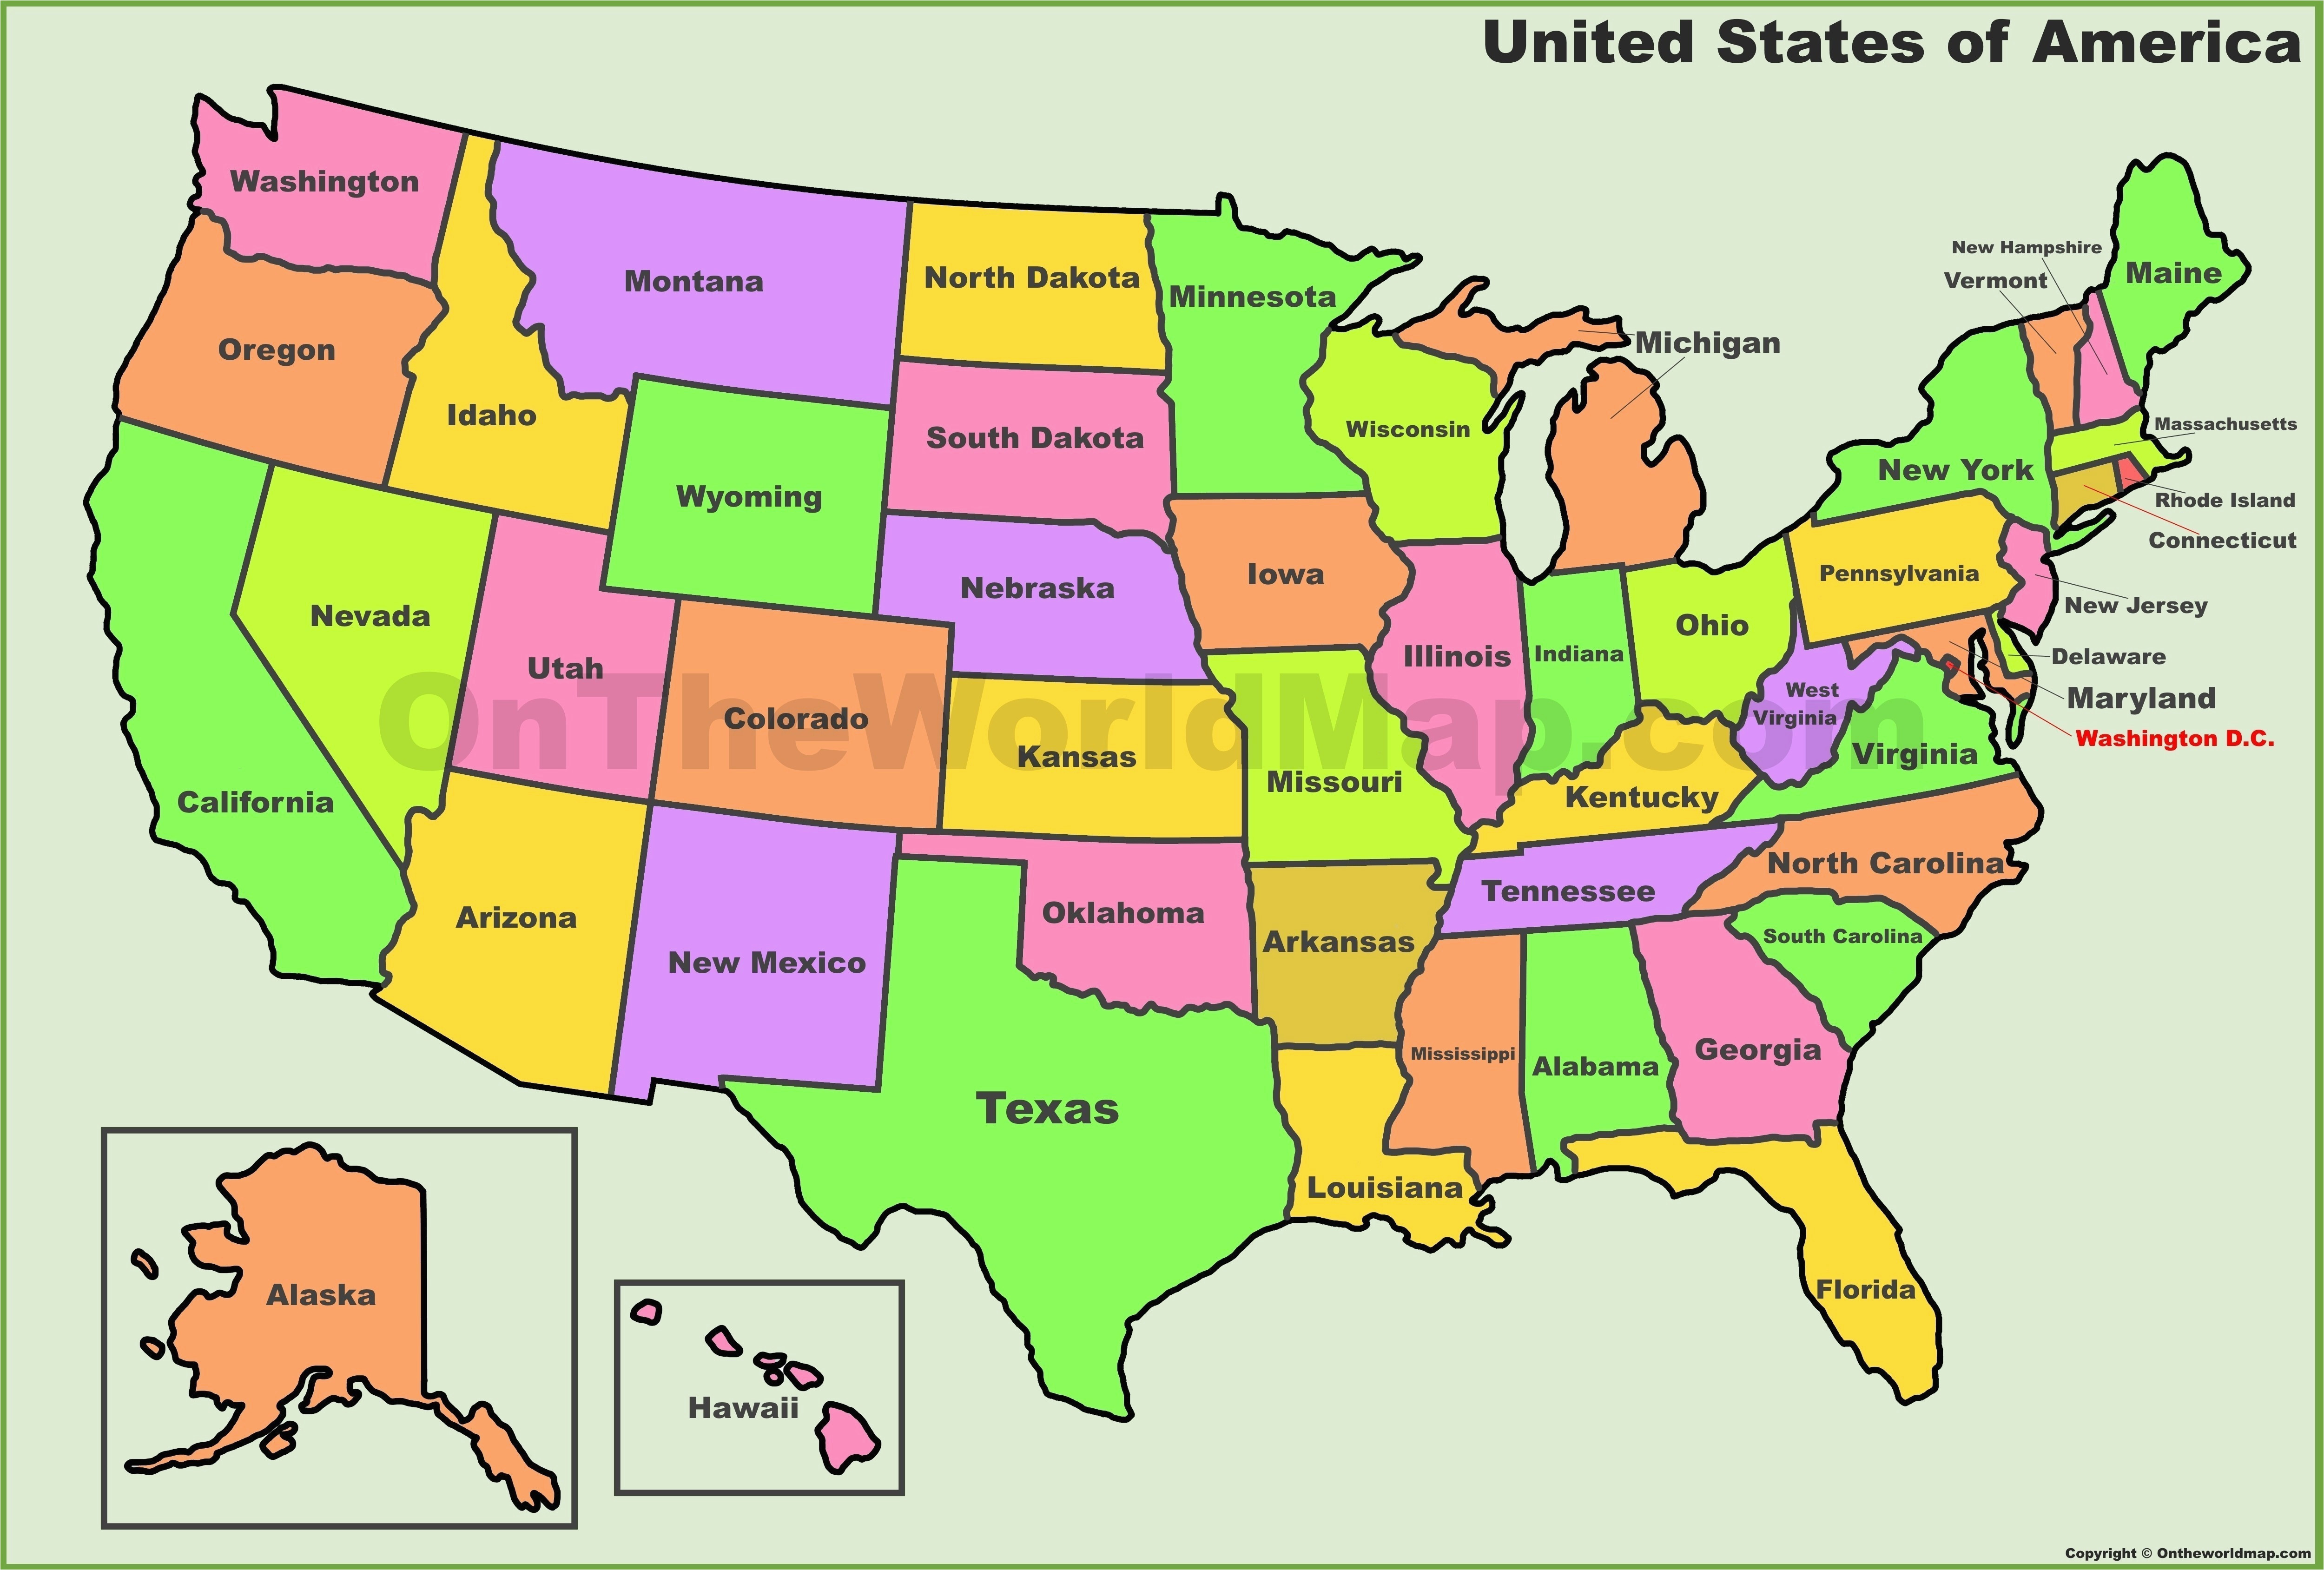 Map Of United States With Names Of States.State Of Ohio Maps United States Map Outline With State Names New